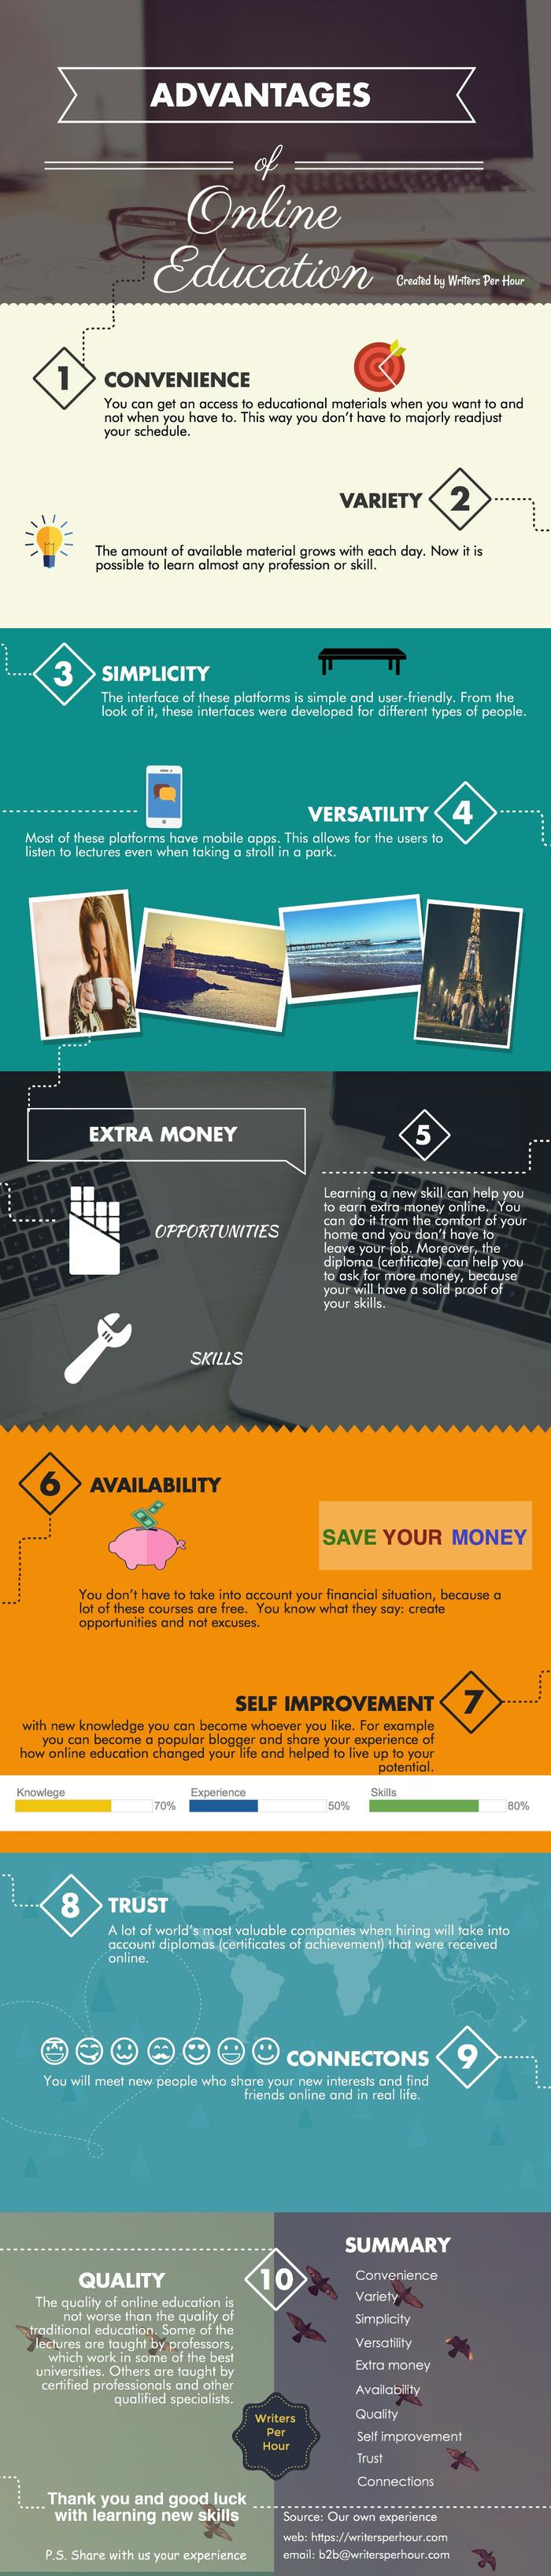 Infographics made by our Team of Writers Per Hour - Custom Writing Service 111 Mulberry - Photo 5 of 6